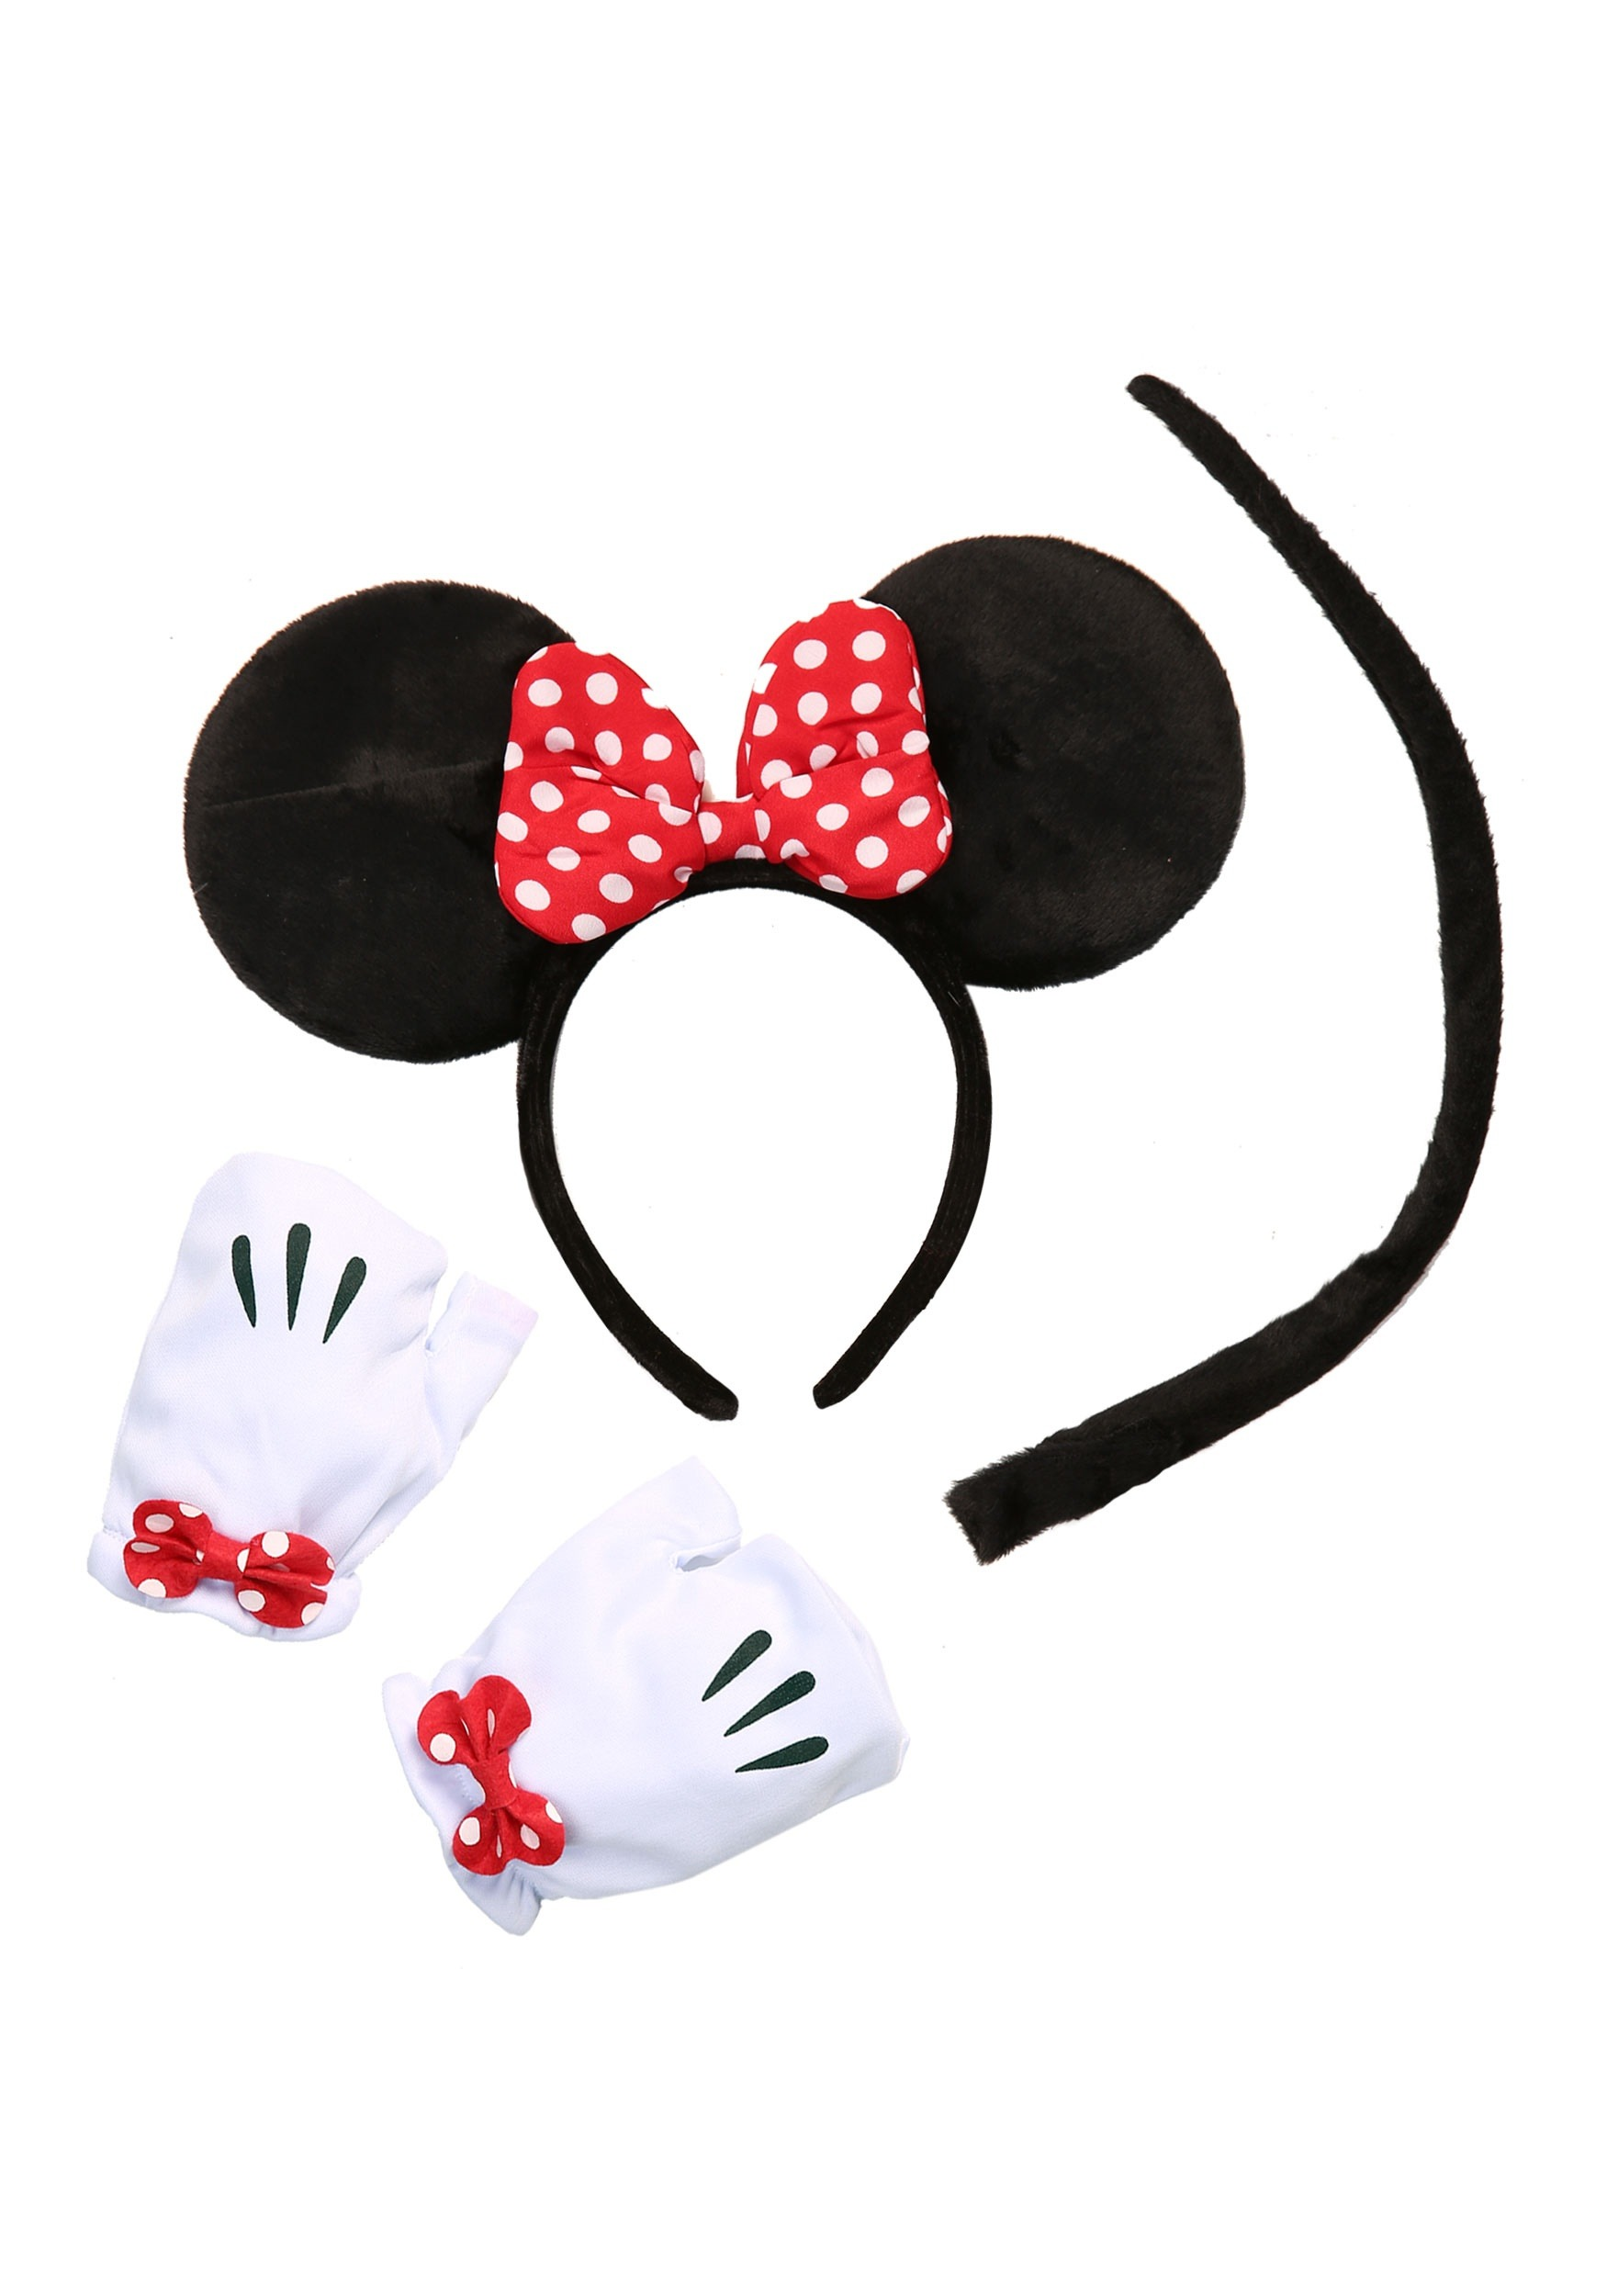 Mouse Costumes, Ears & Outfits - HalloweenCostumes.com